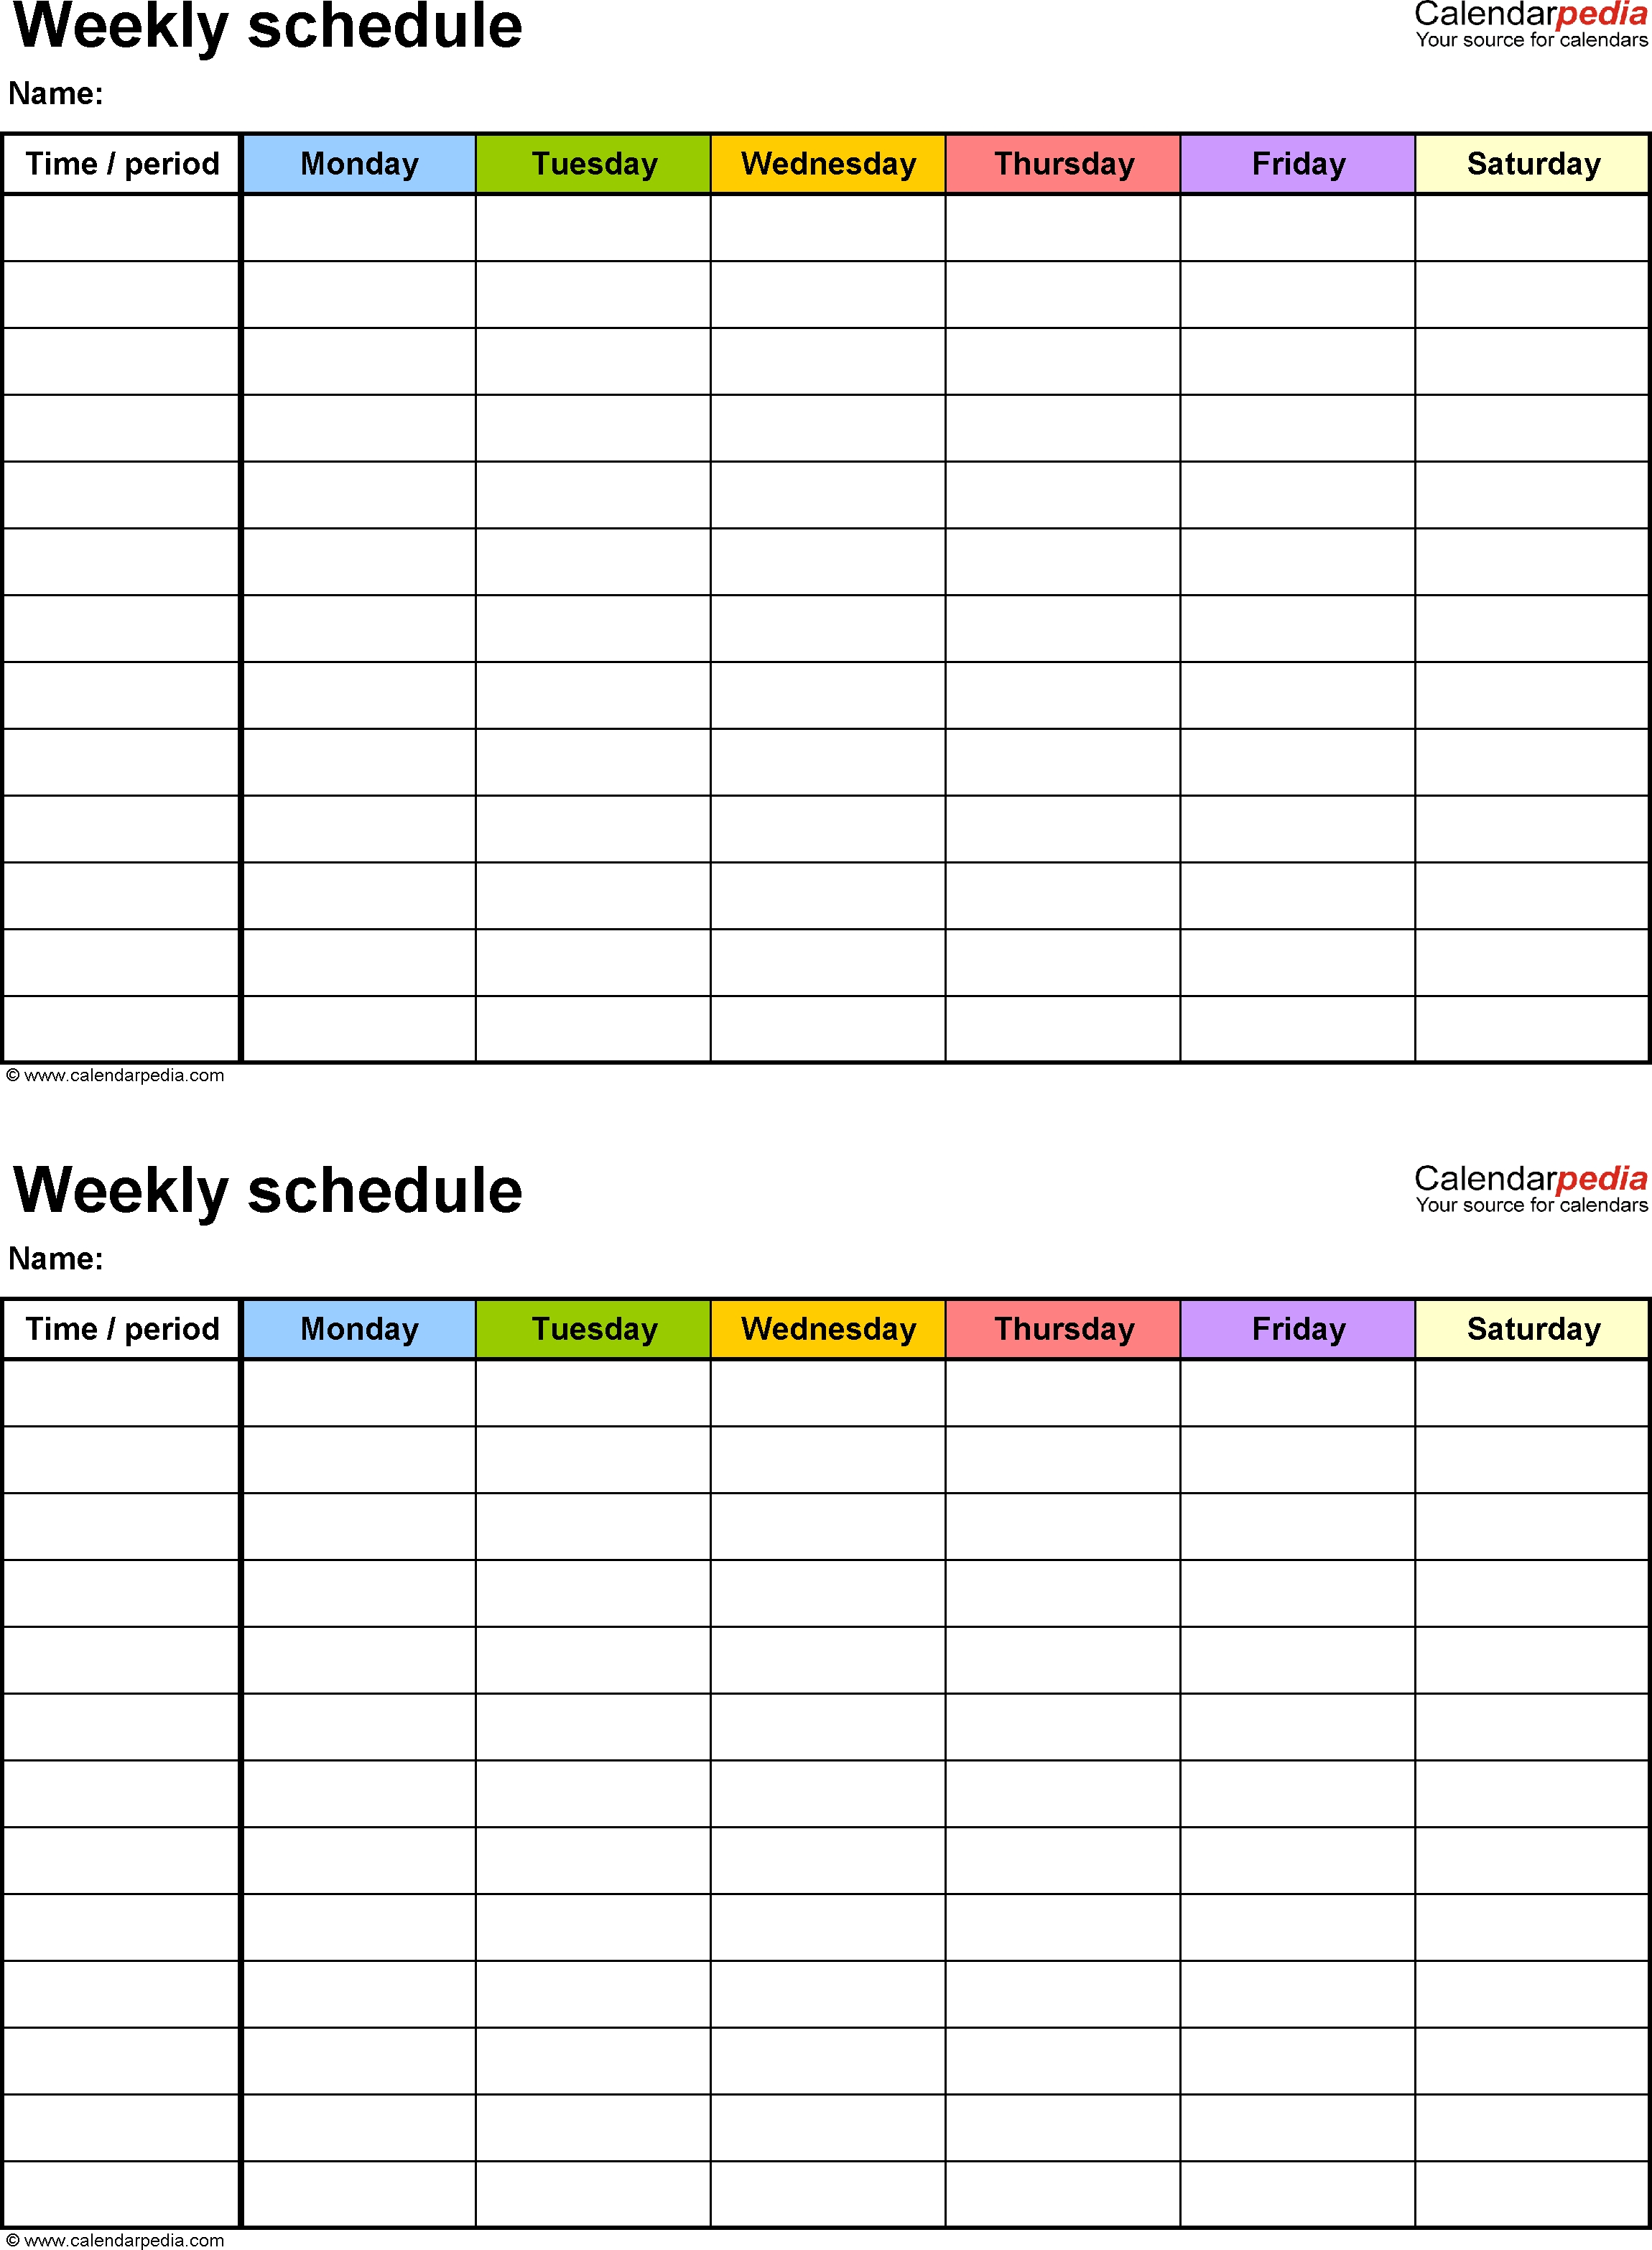 Free Weekly Schedule Templates For Word - 18 Templates  7 Days A Week Planner